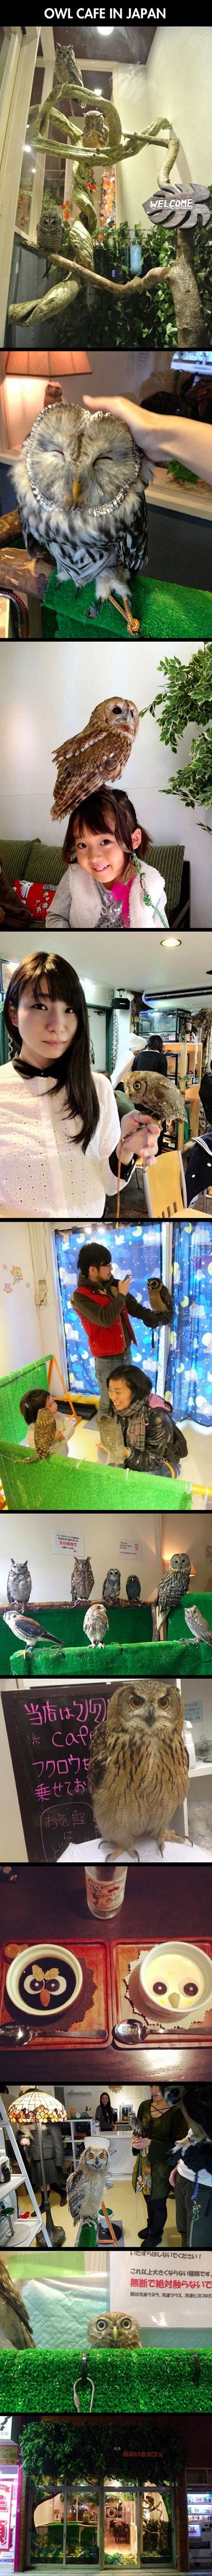 "Forget cat cafes. Or black cat cafes. Or penguin bars. Japan's latest novelty cafe is the ""fukurou cafe"" (フクロウカフェ), or the ""owl cafe."""